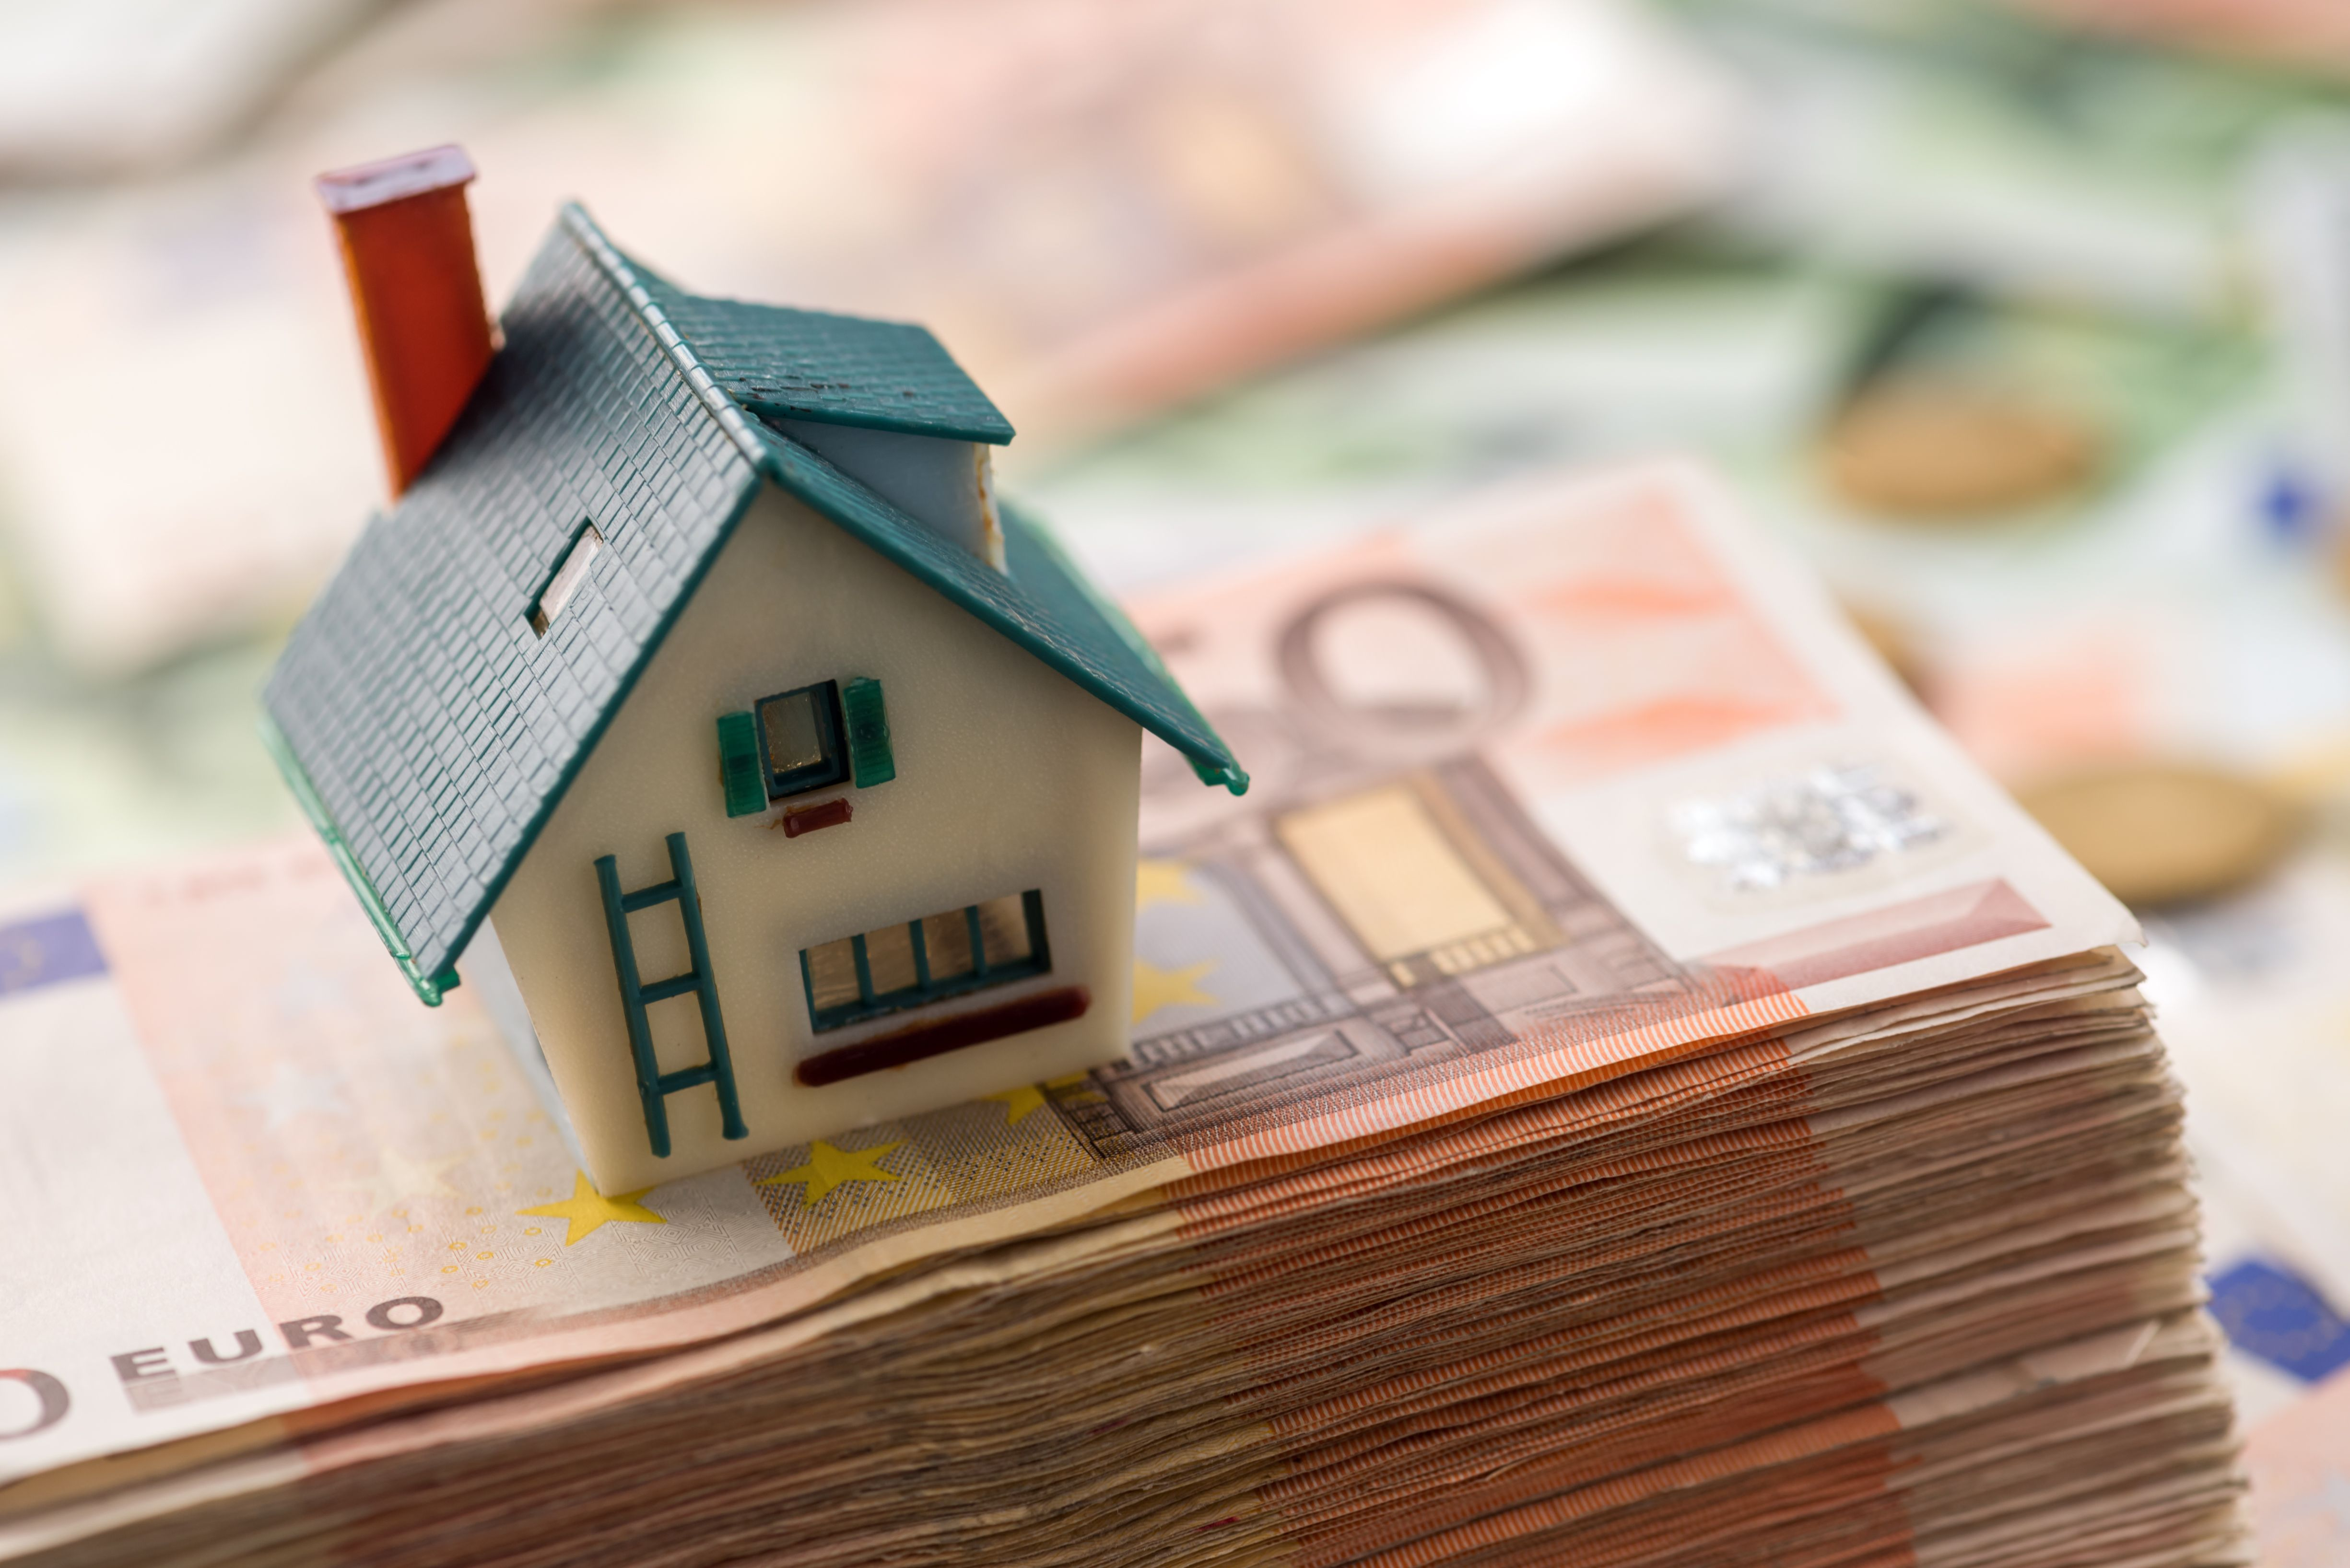 A pile of money with a model house on top against a blurred background